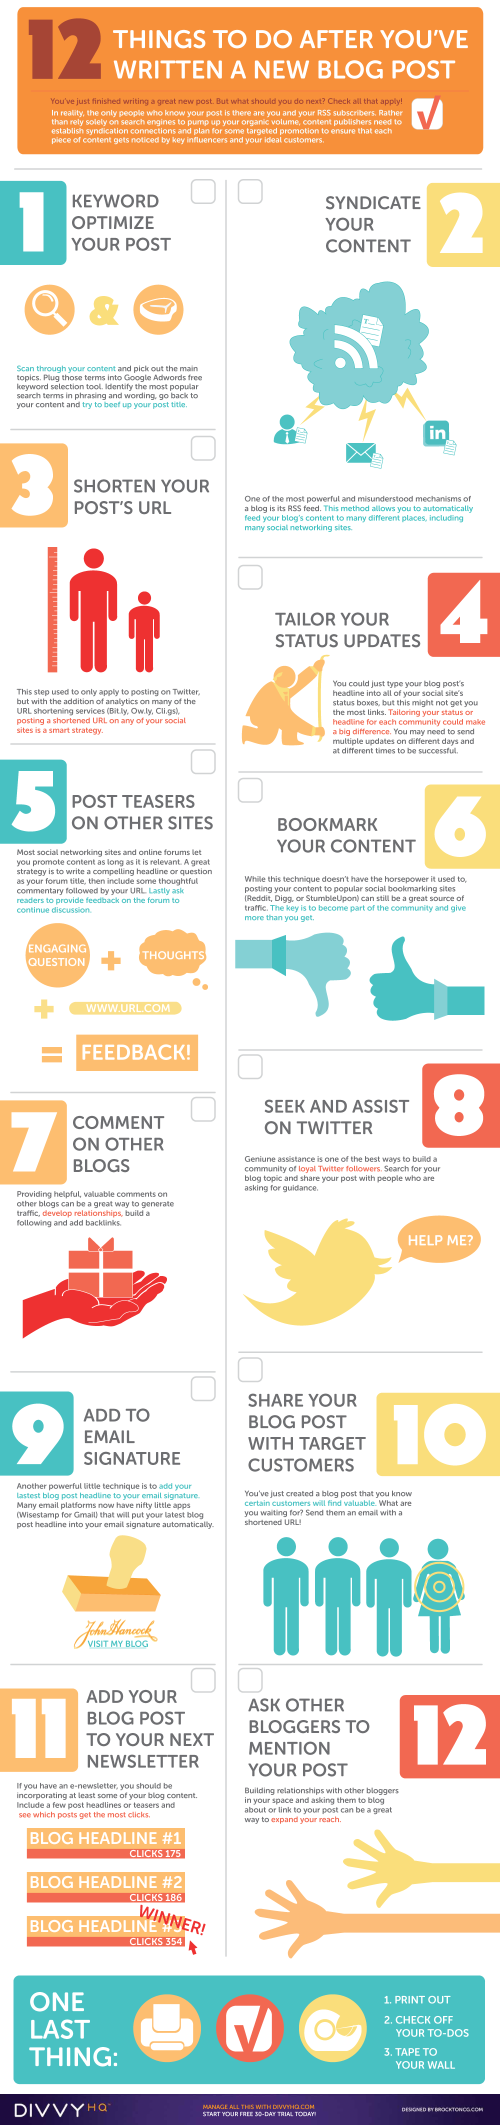 12-things-to-be-followed-after-blog-post_51761e32156ab